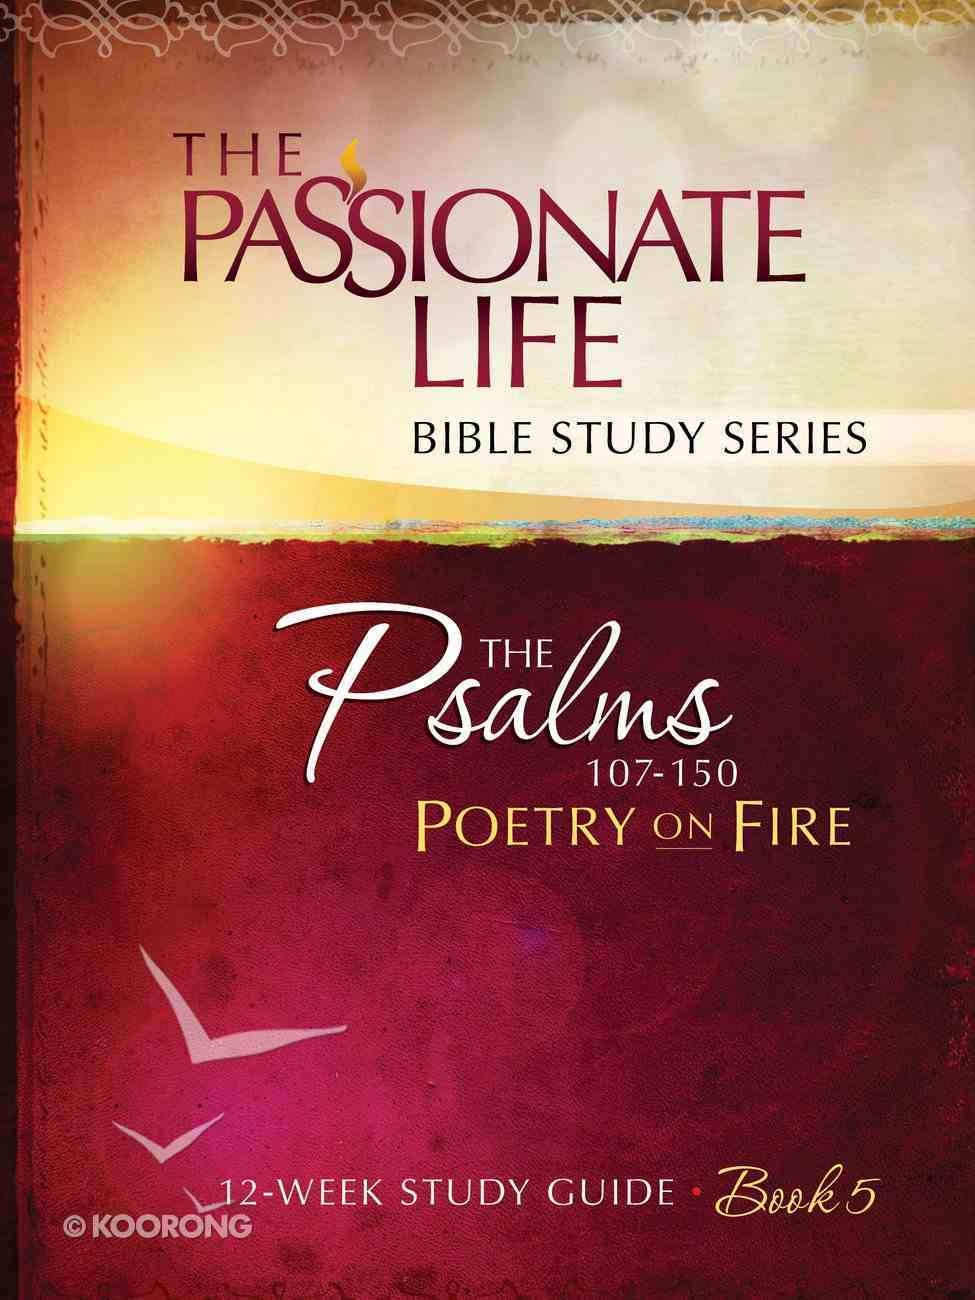 Psalms: Poetry on Fire Book Five 12-Week Study Guide (The Passionate Life Bible Study Series) eBook